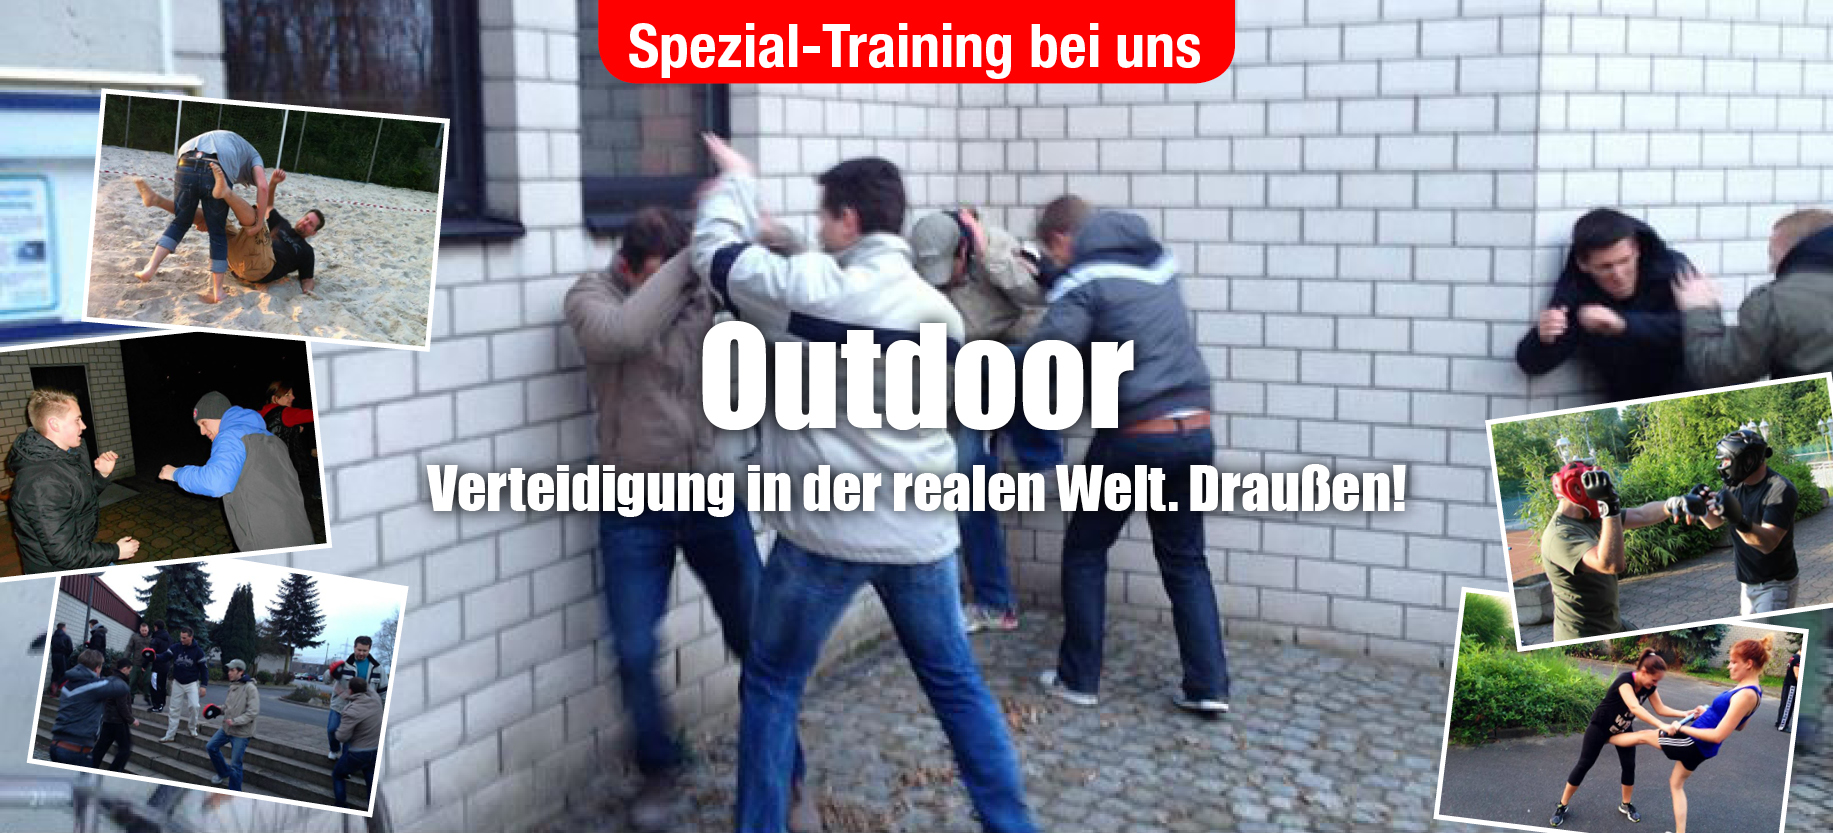 spezial-training_Outdoor